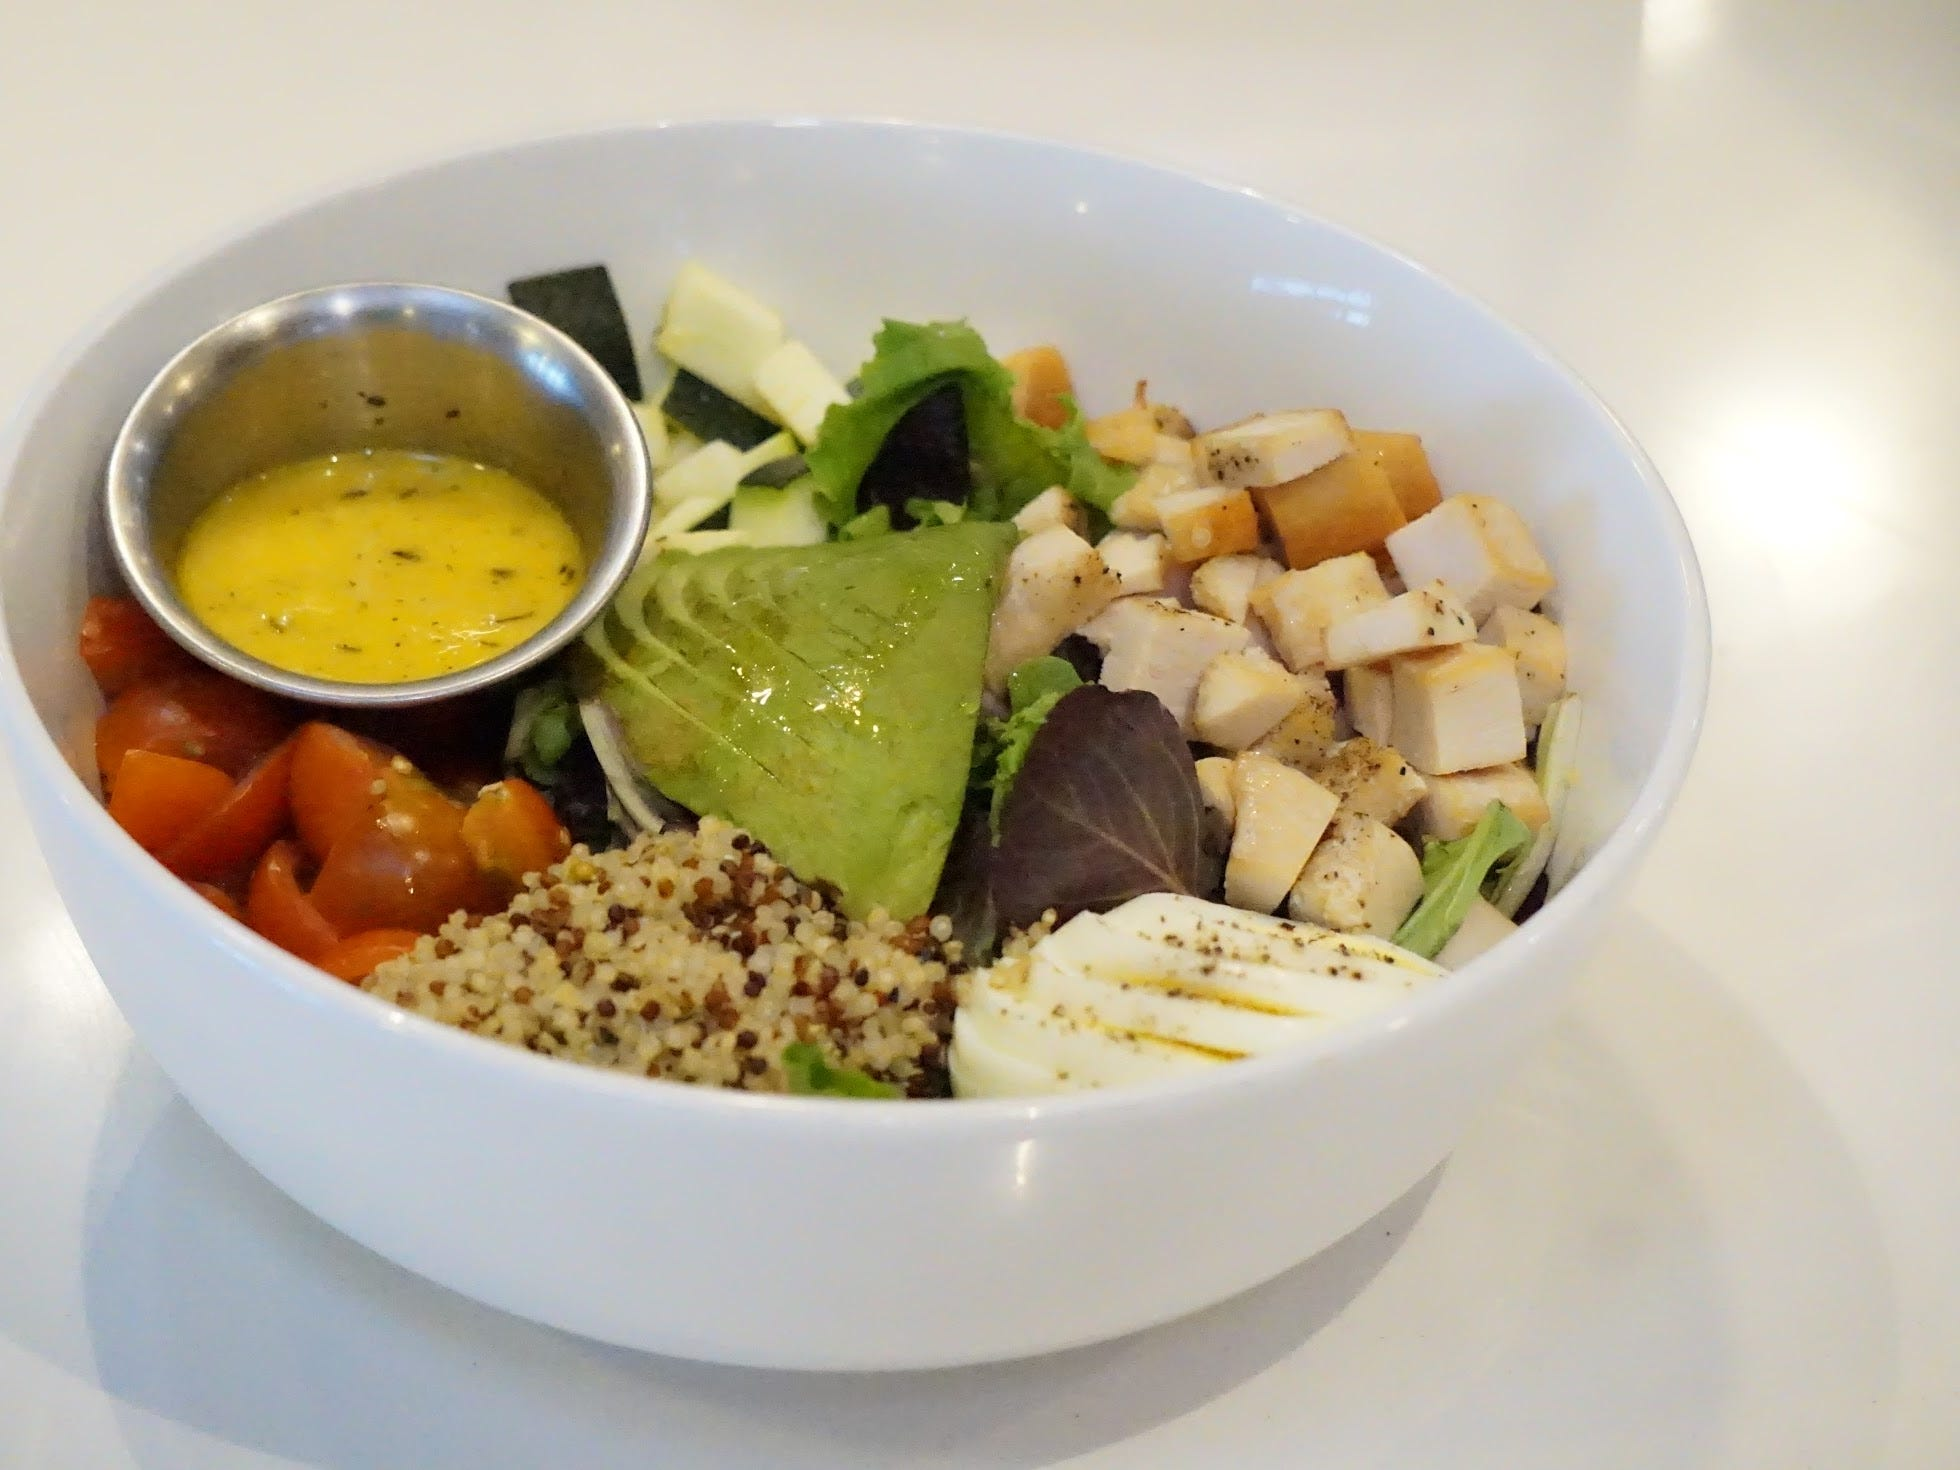 The I'm No Spring Chicken bowl at Luci's Healthy Marketplace.